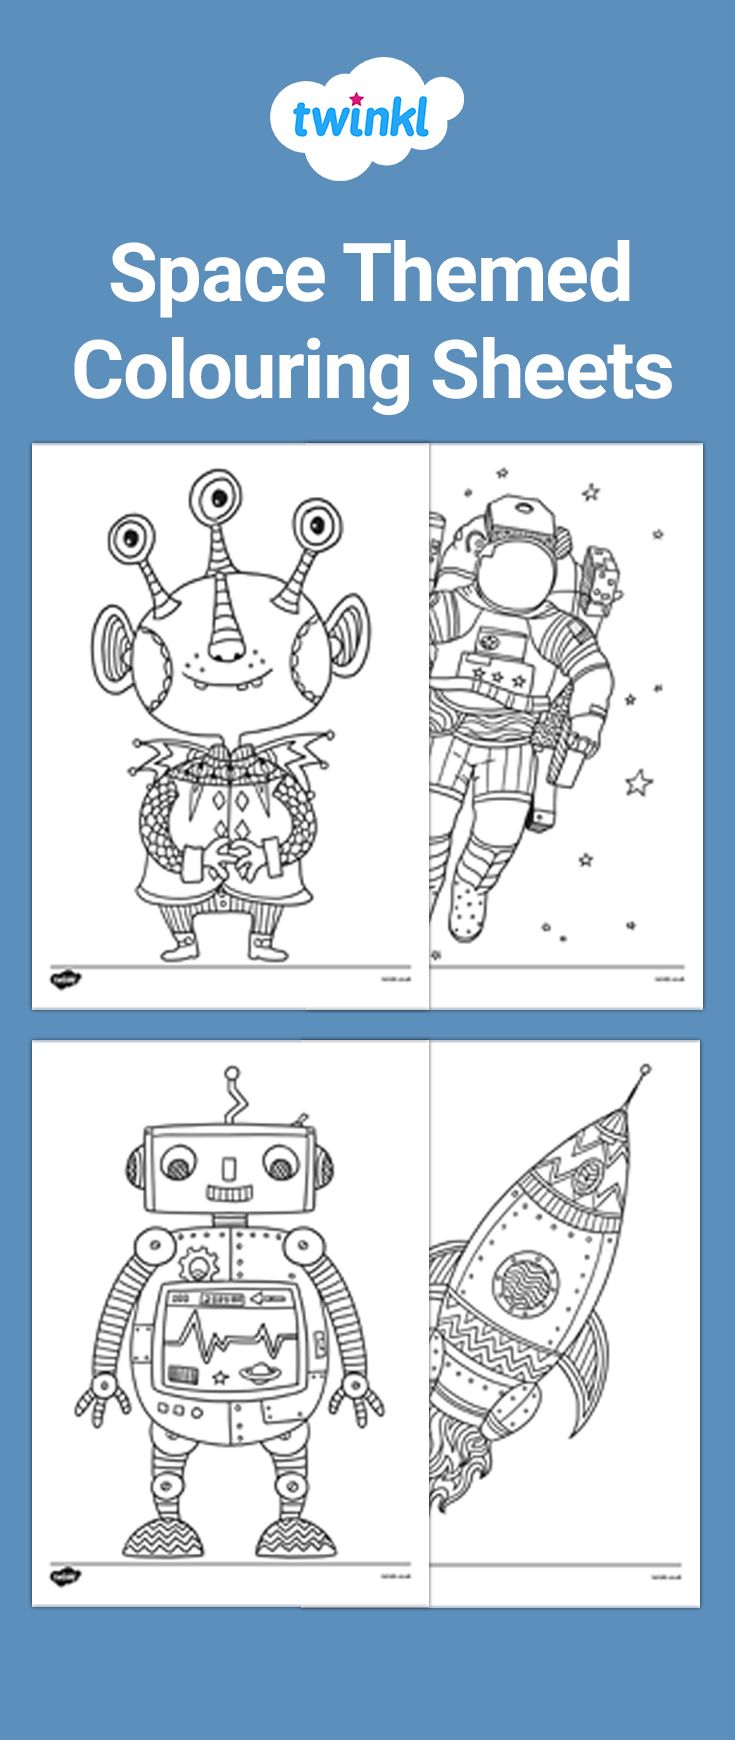 Space Themed Colouring Sheets Mindfulness Colouring Coloring Sheets Theme